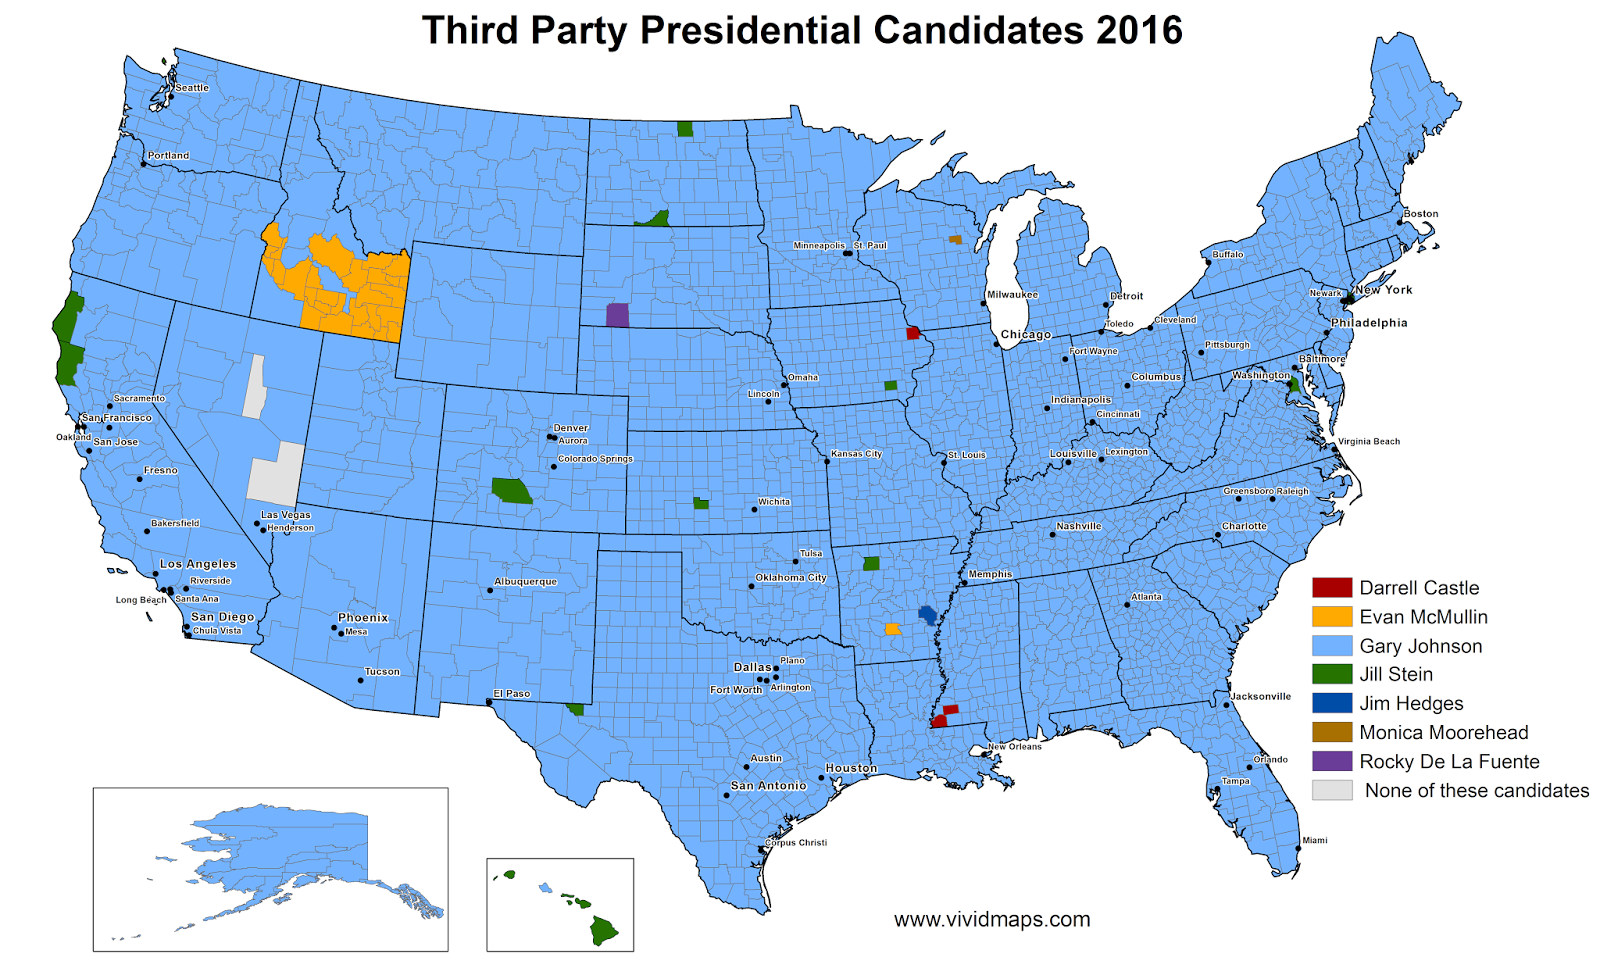 Third party presidential candidates 2016